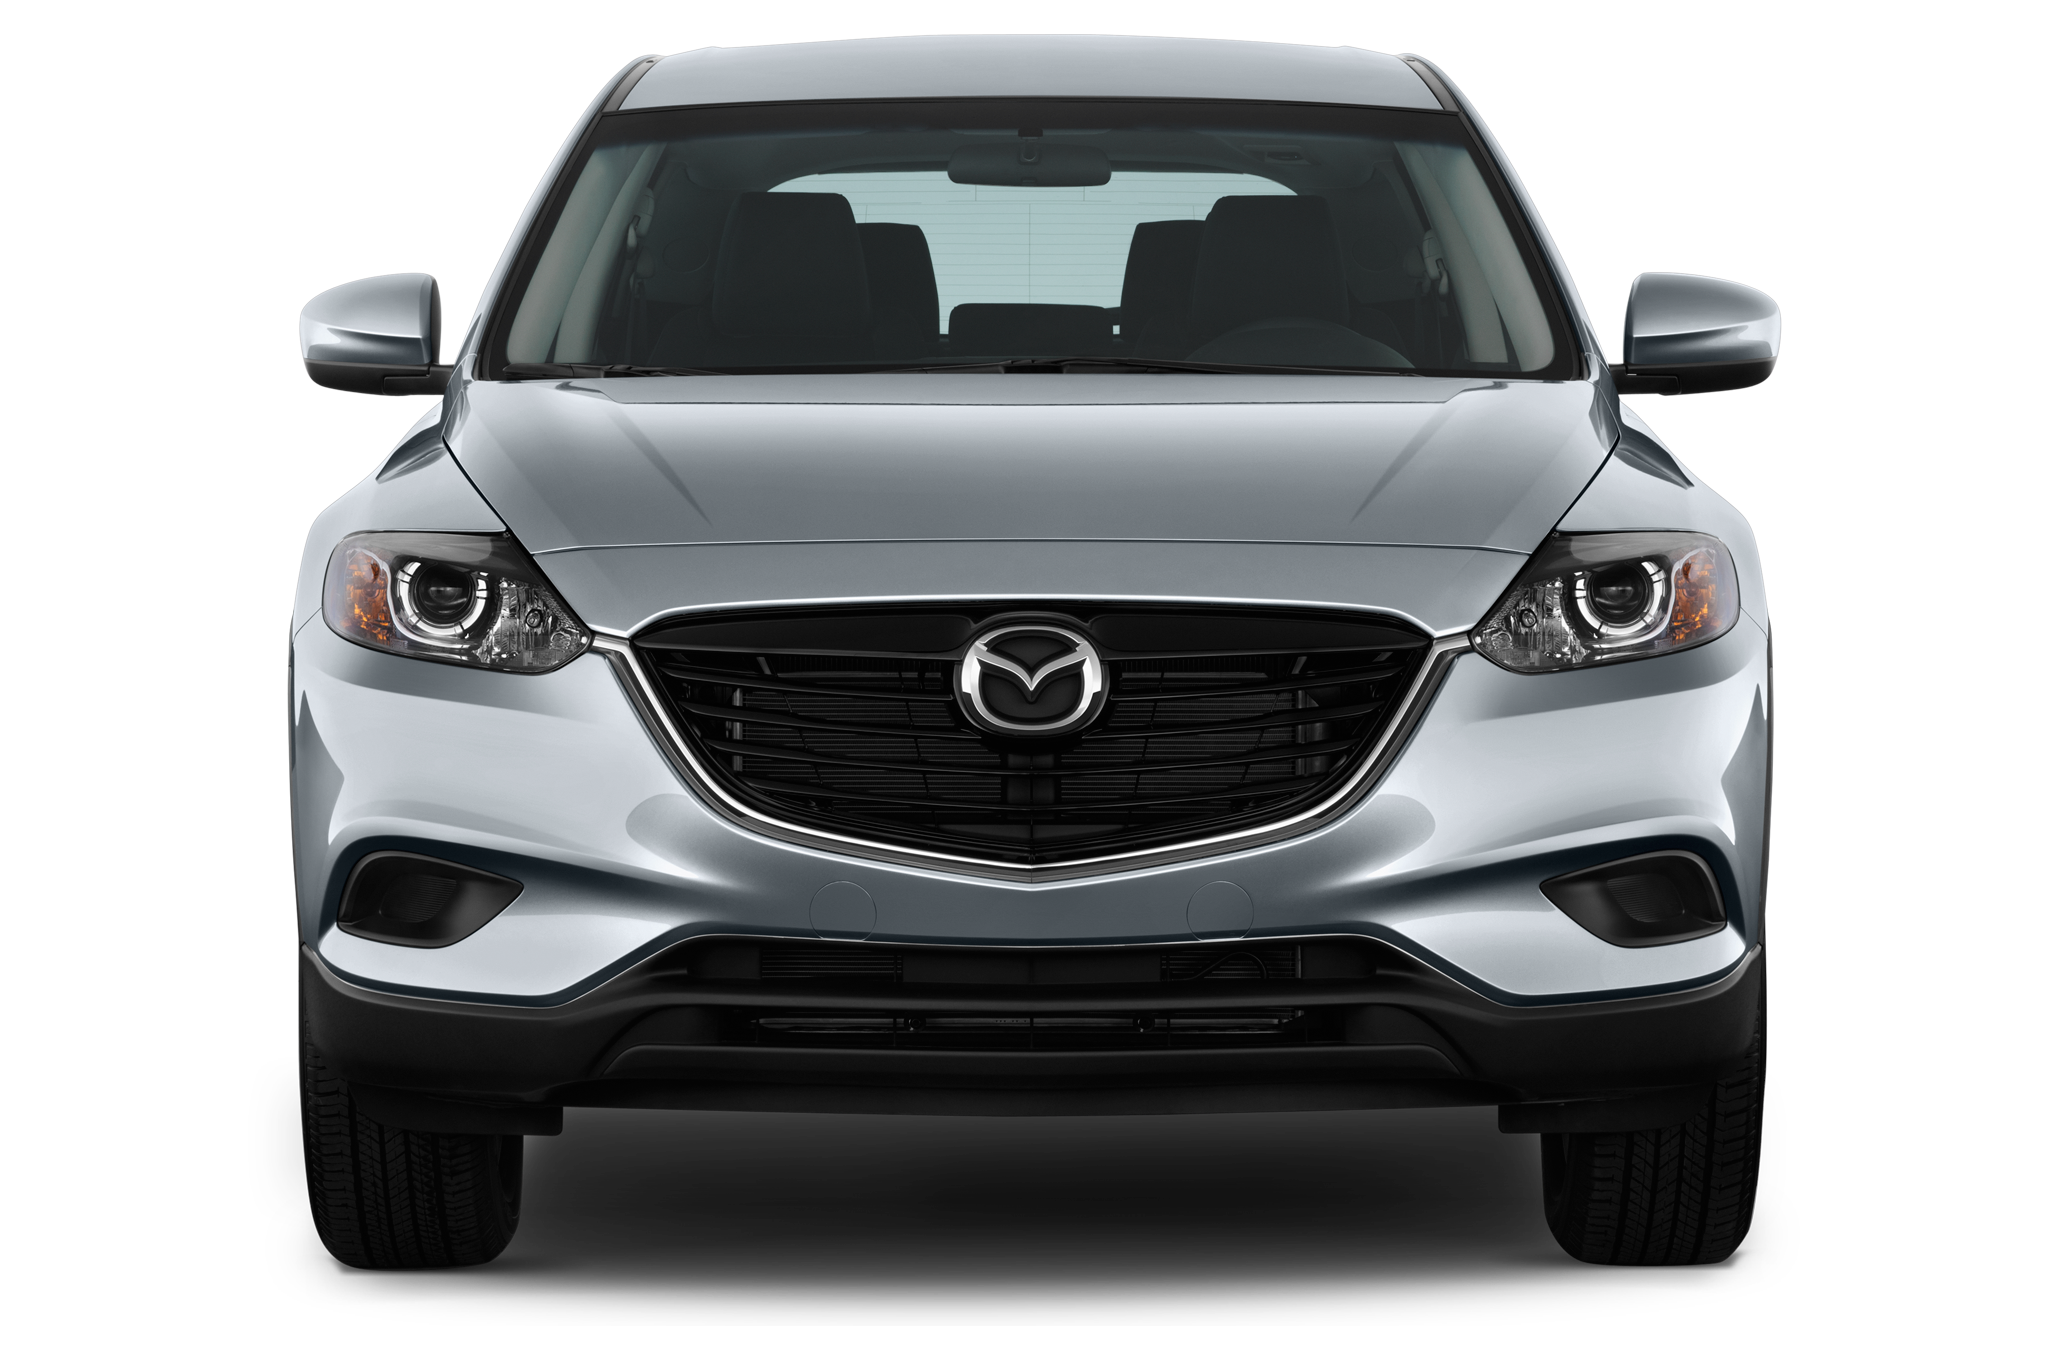 https://st.automobilemag.com/uploads/sites/10/2015/11/2013-mazda-cx9-sport-fwd-suv-front-view.png